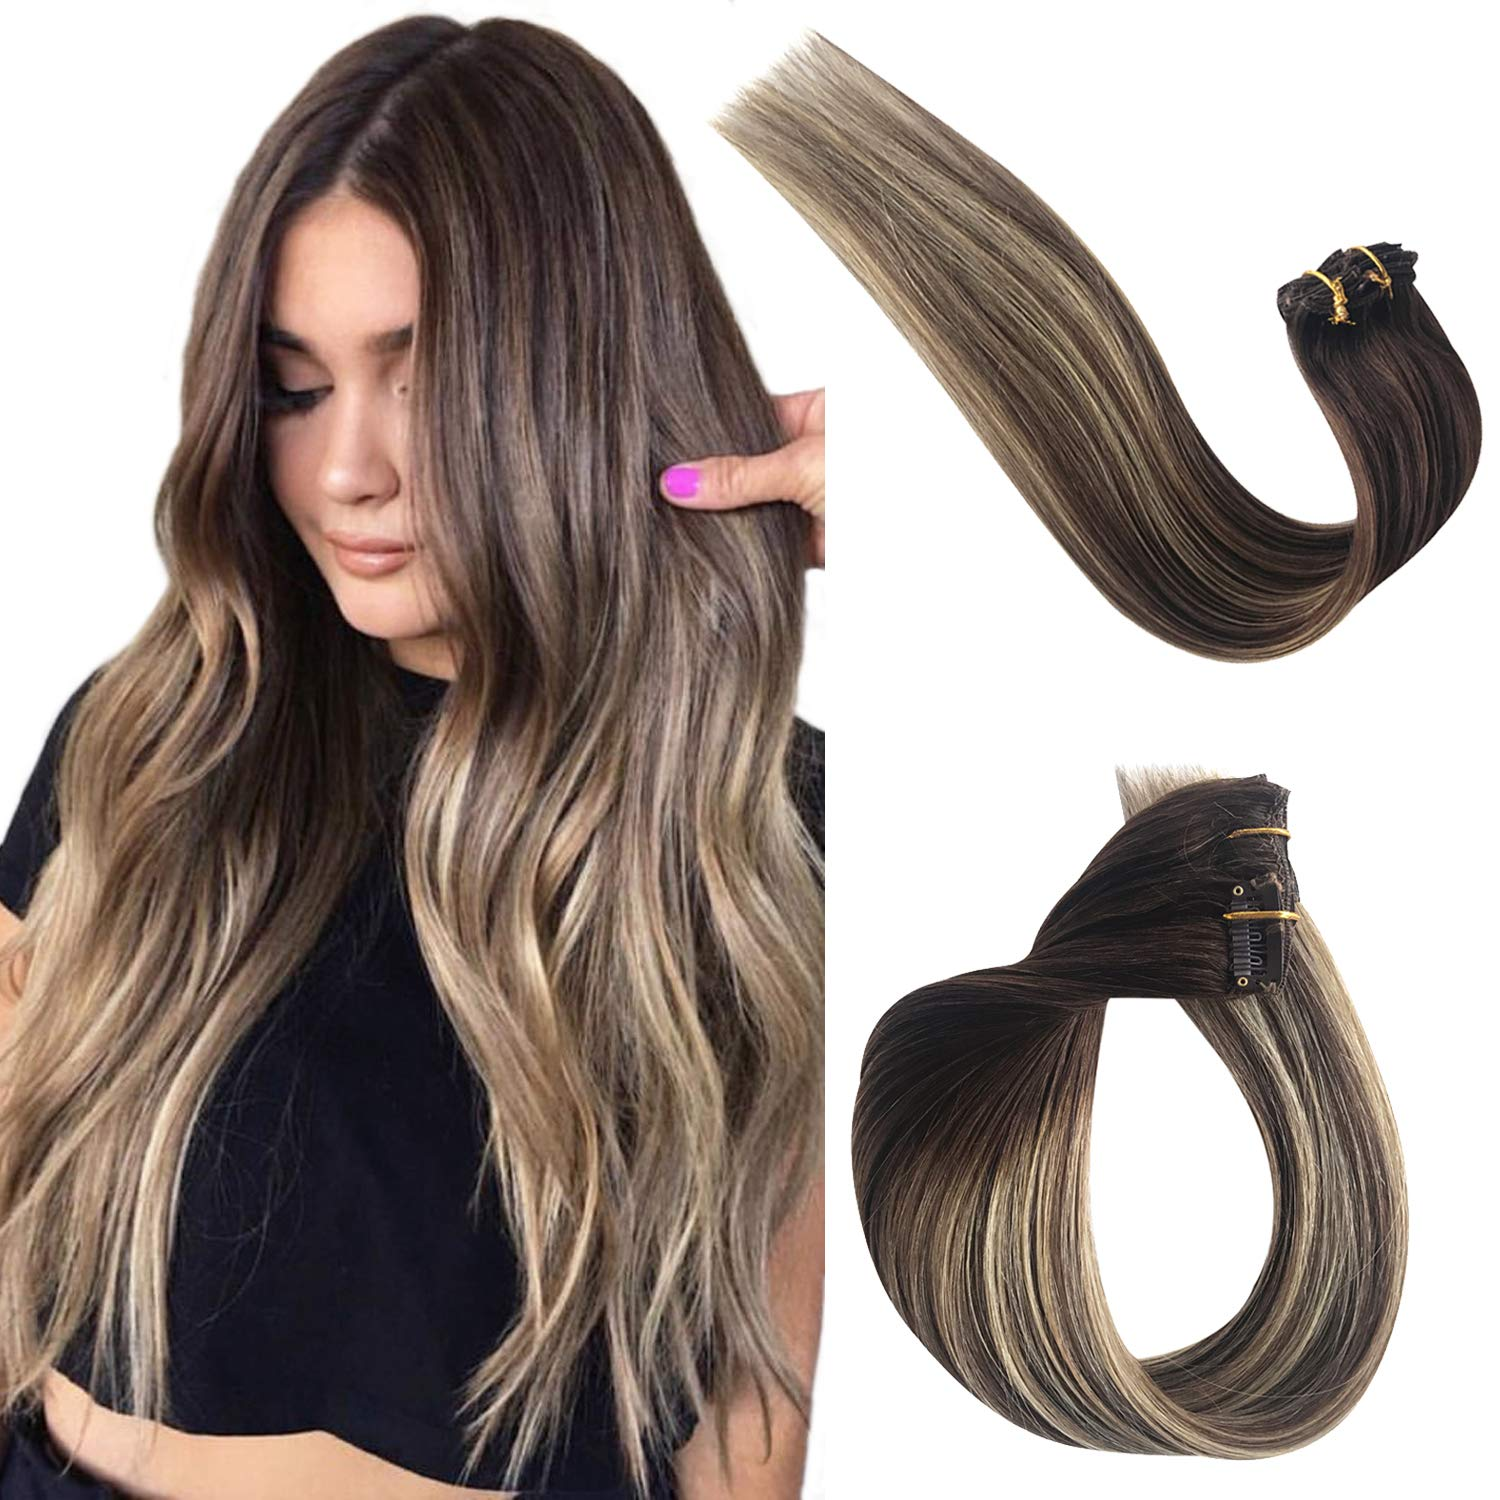 Benafee Clip in Hair Extensions Human Hair for Black/White Women Ombre  Balayage Real Remy Hair Extensions Clip on Medium Brown with Honey Blonde  ...